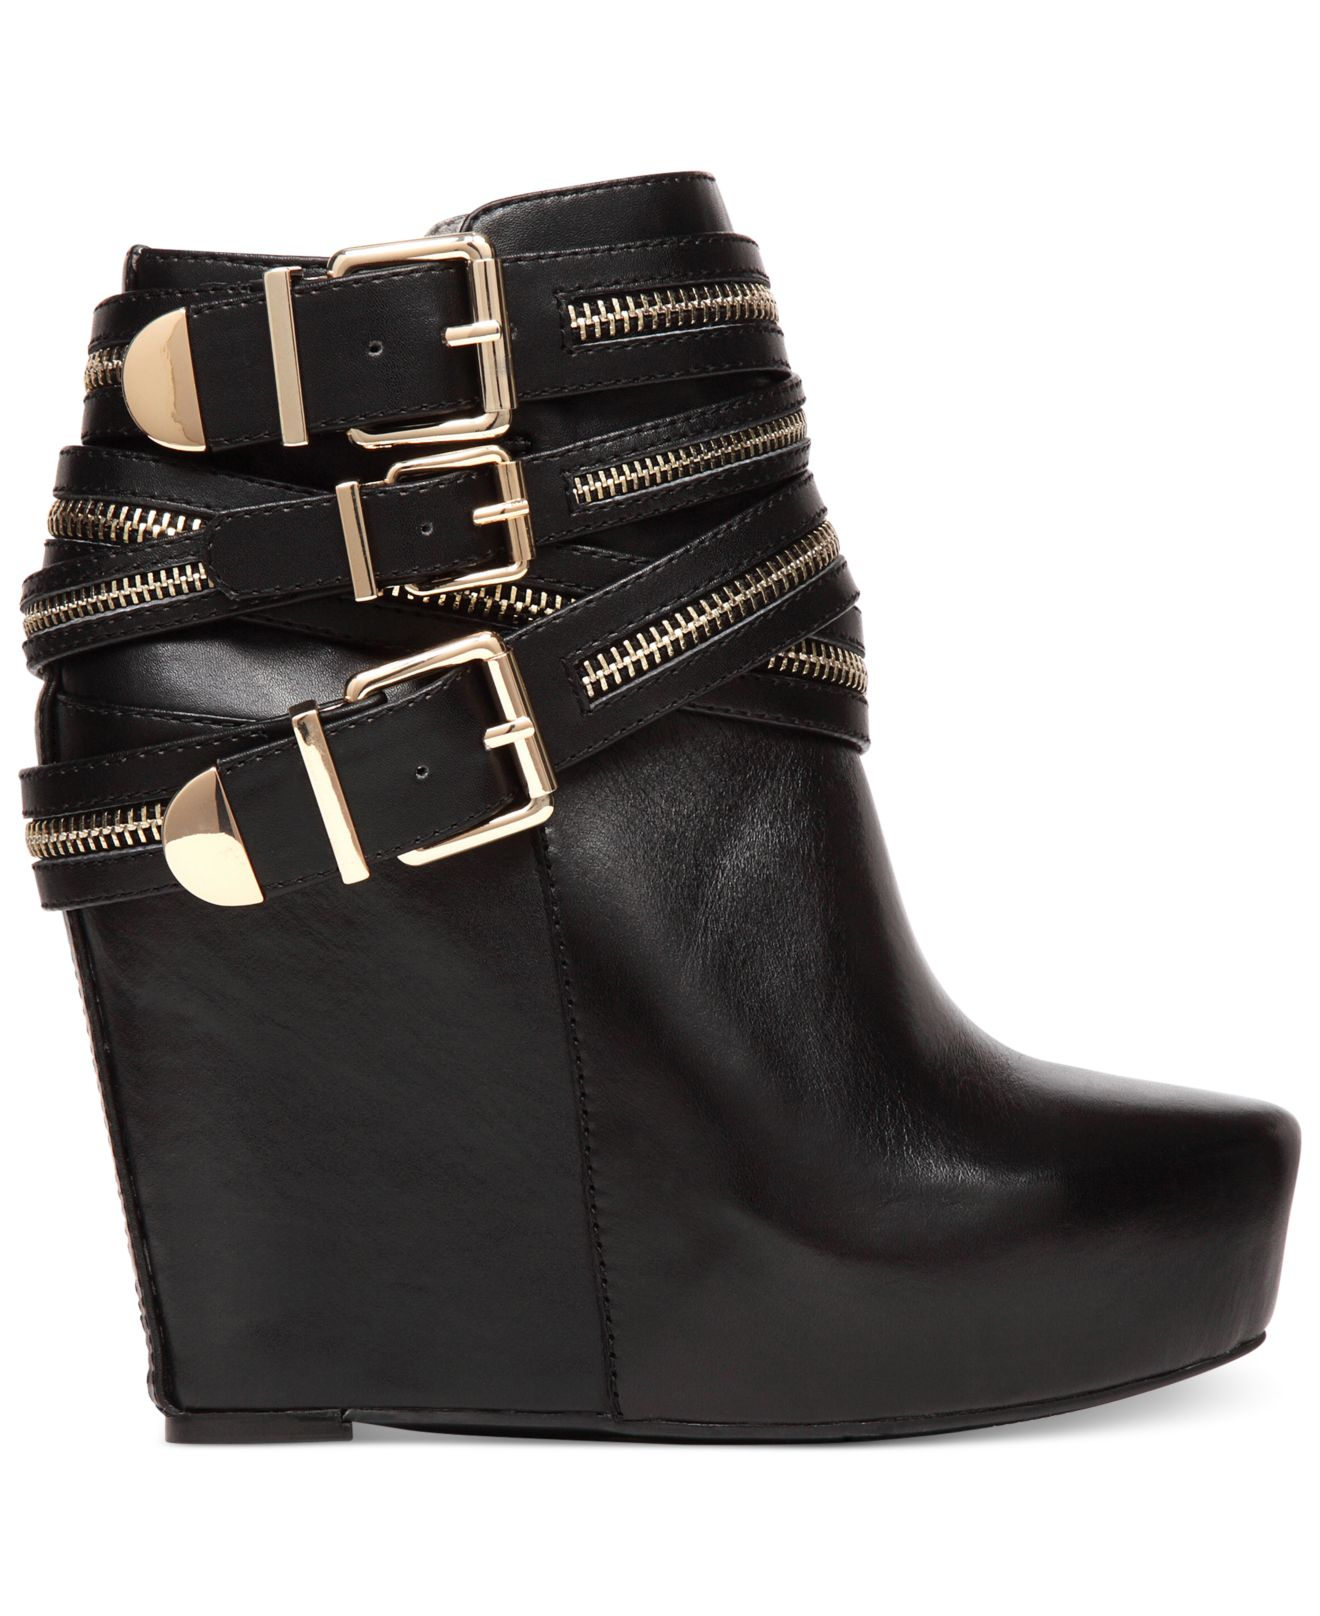 Try a pair of low wedge booties with just a slight lift, or go for the gold in a pair of metallic sneaker booties that have that athleisure look totally down. These flat booties look great with a breezy sundress, a pair of high-waisted shorts or even your favorite boyfriend jeans.